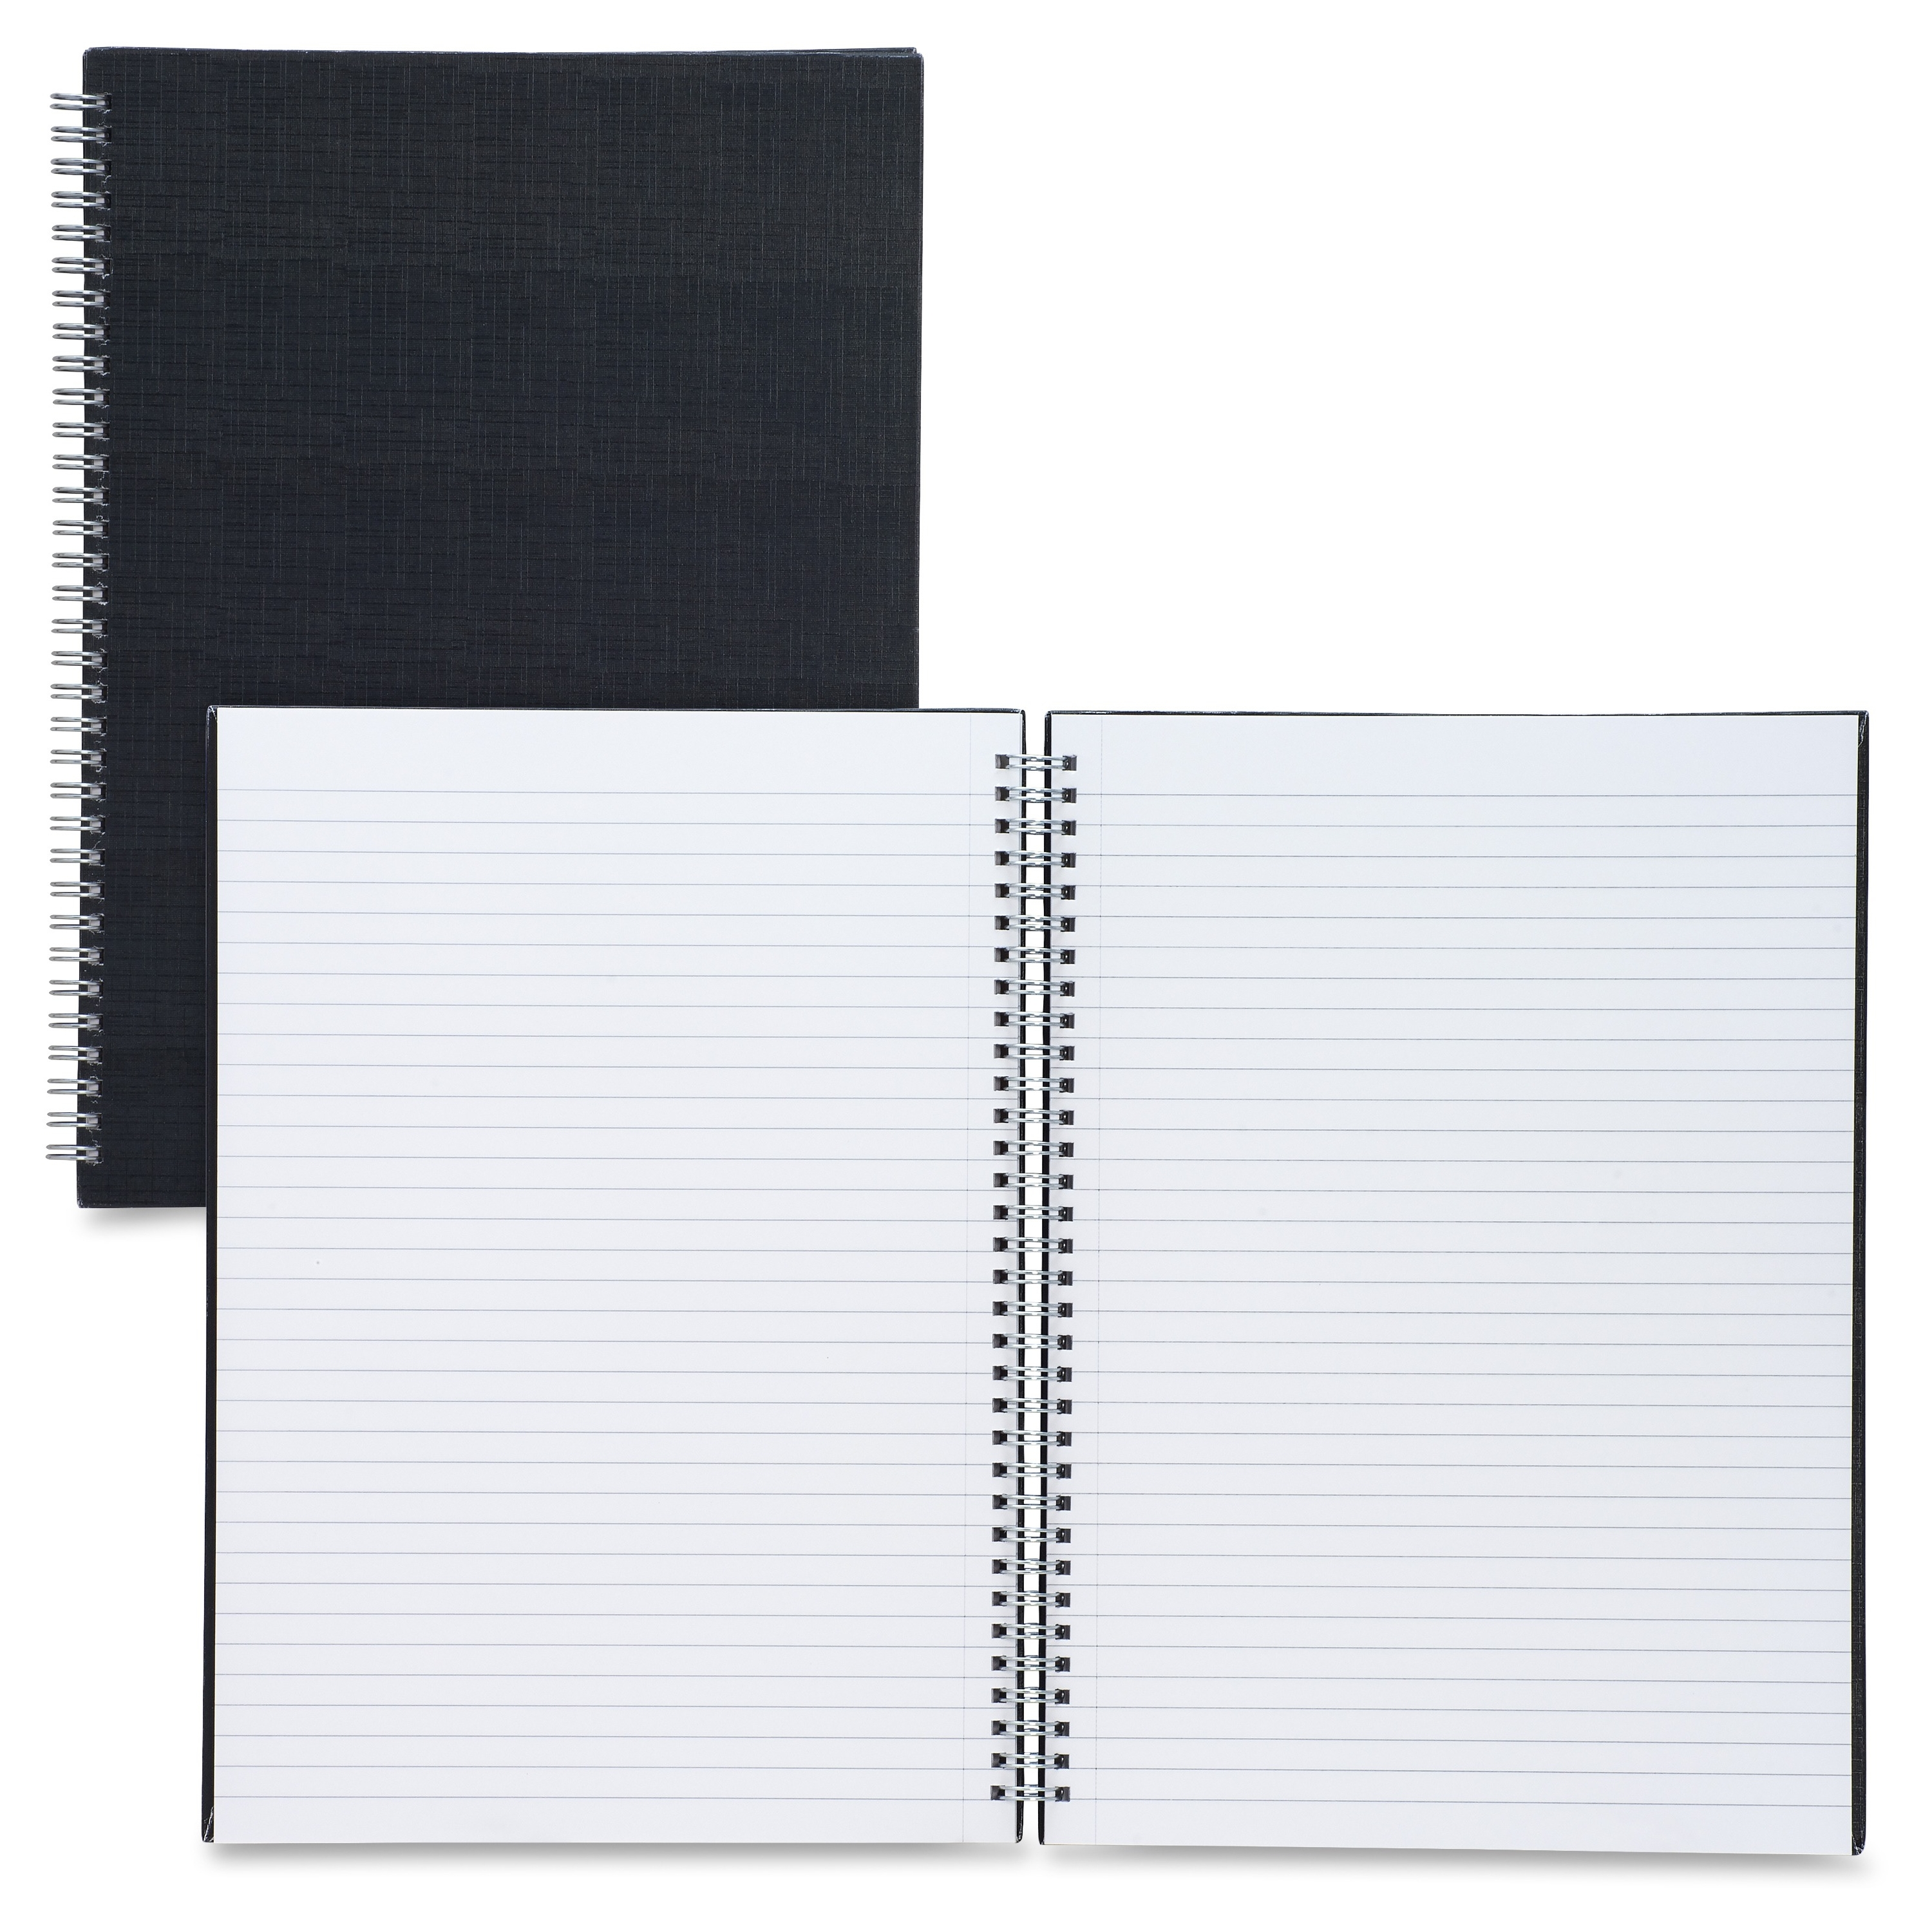 """Sparco Twin-wire A4 Linen Notebook - 80 Page - Ruled - A4 8.27"""" X 11.69"""" - 1 Each Black Cover (spr-17708)"""